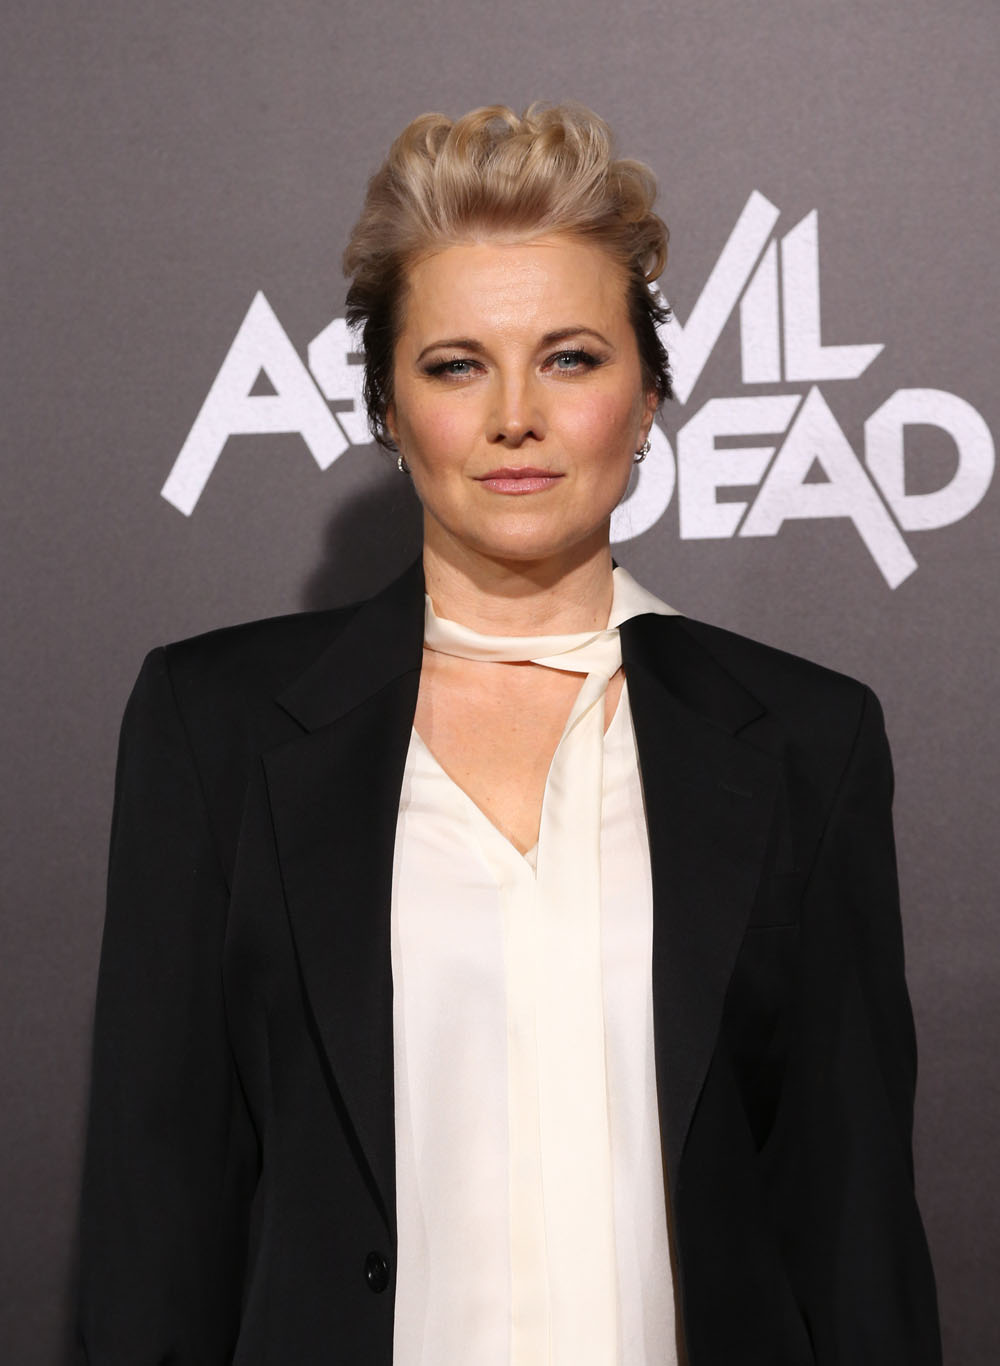 Full Hd Wallpaper For Android Mobile Lucy Lawless Hairstyle Full Hd Pictures